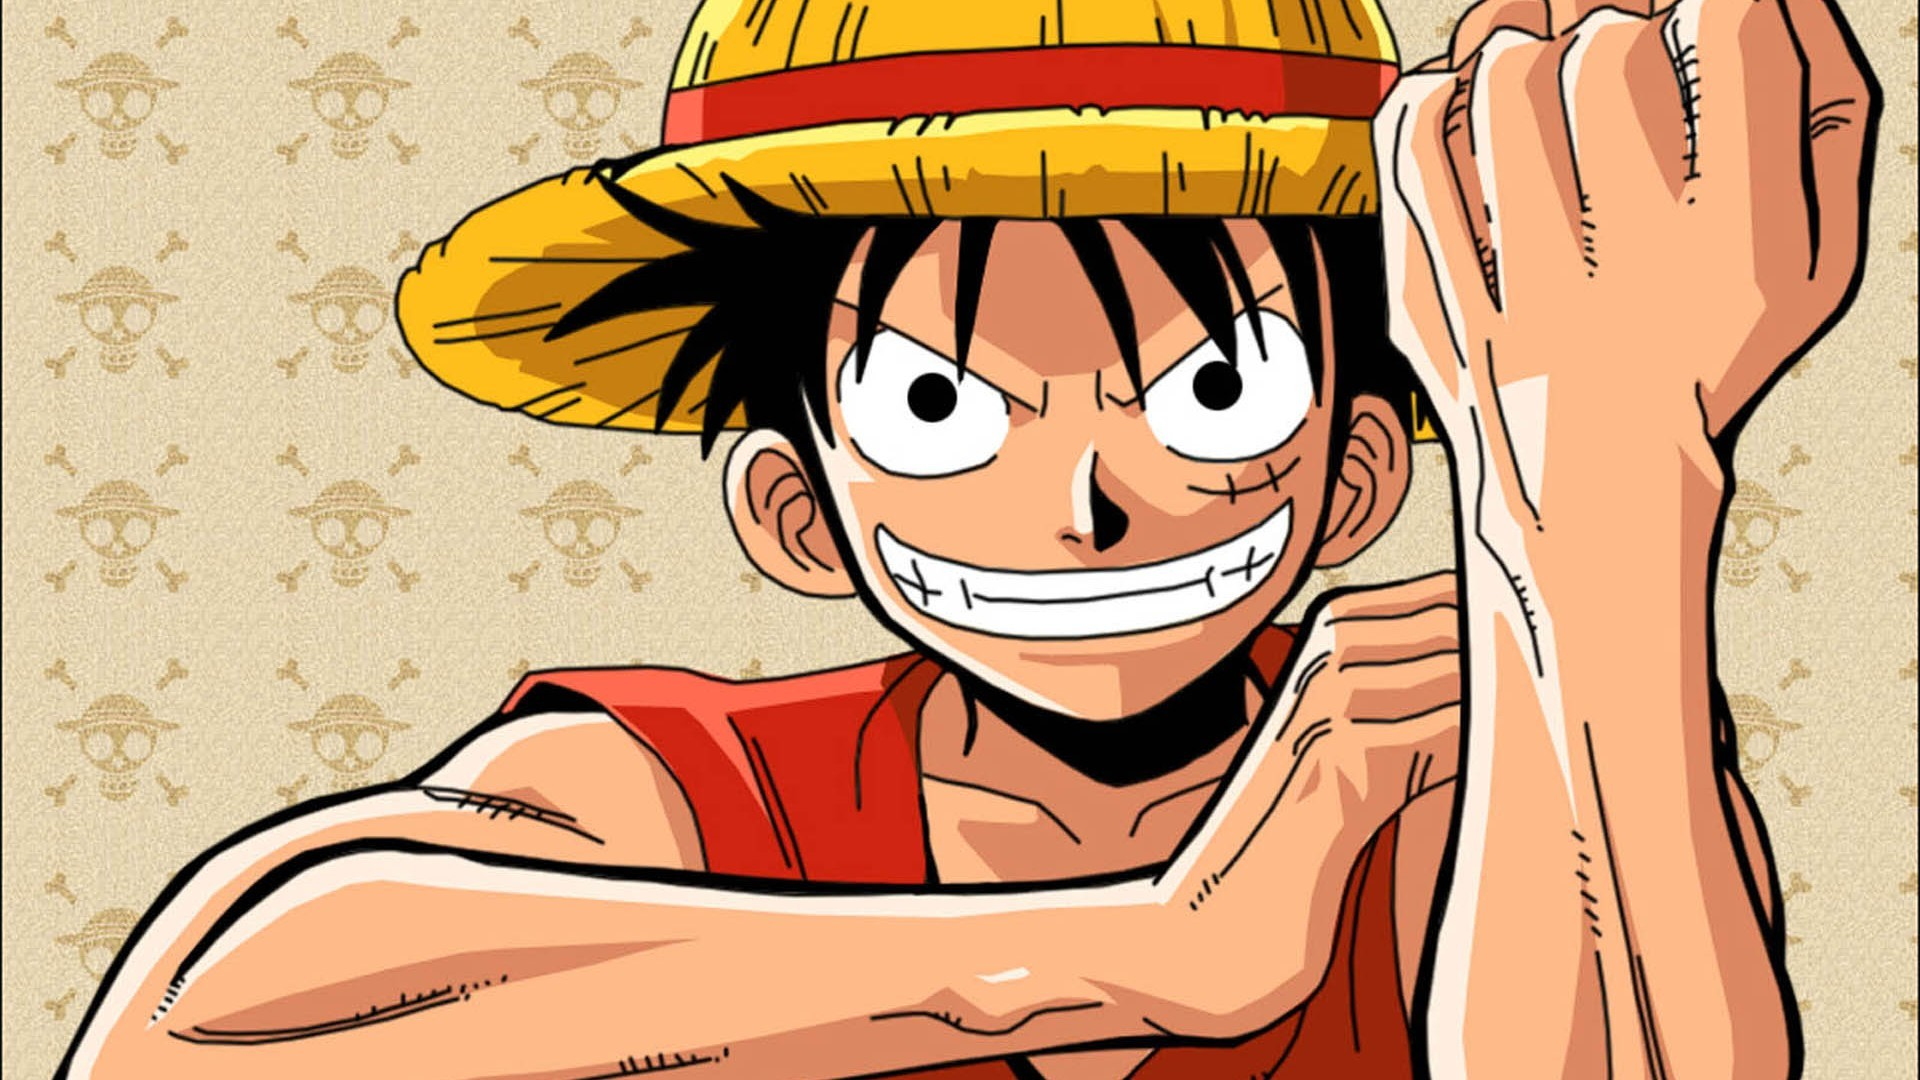 1920x1080 Luffy One Piece Images HD Wallpaper